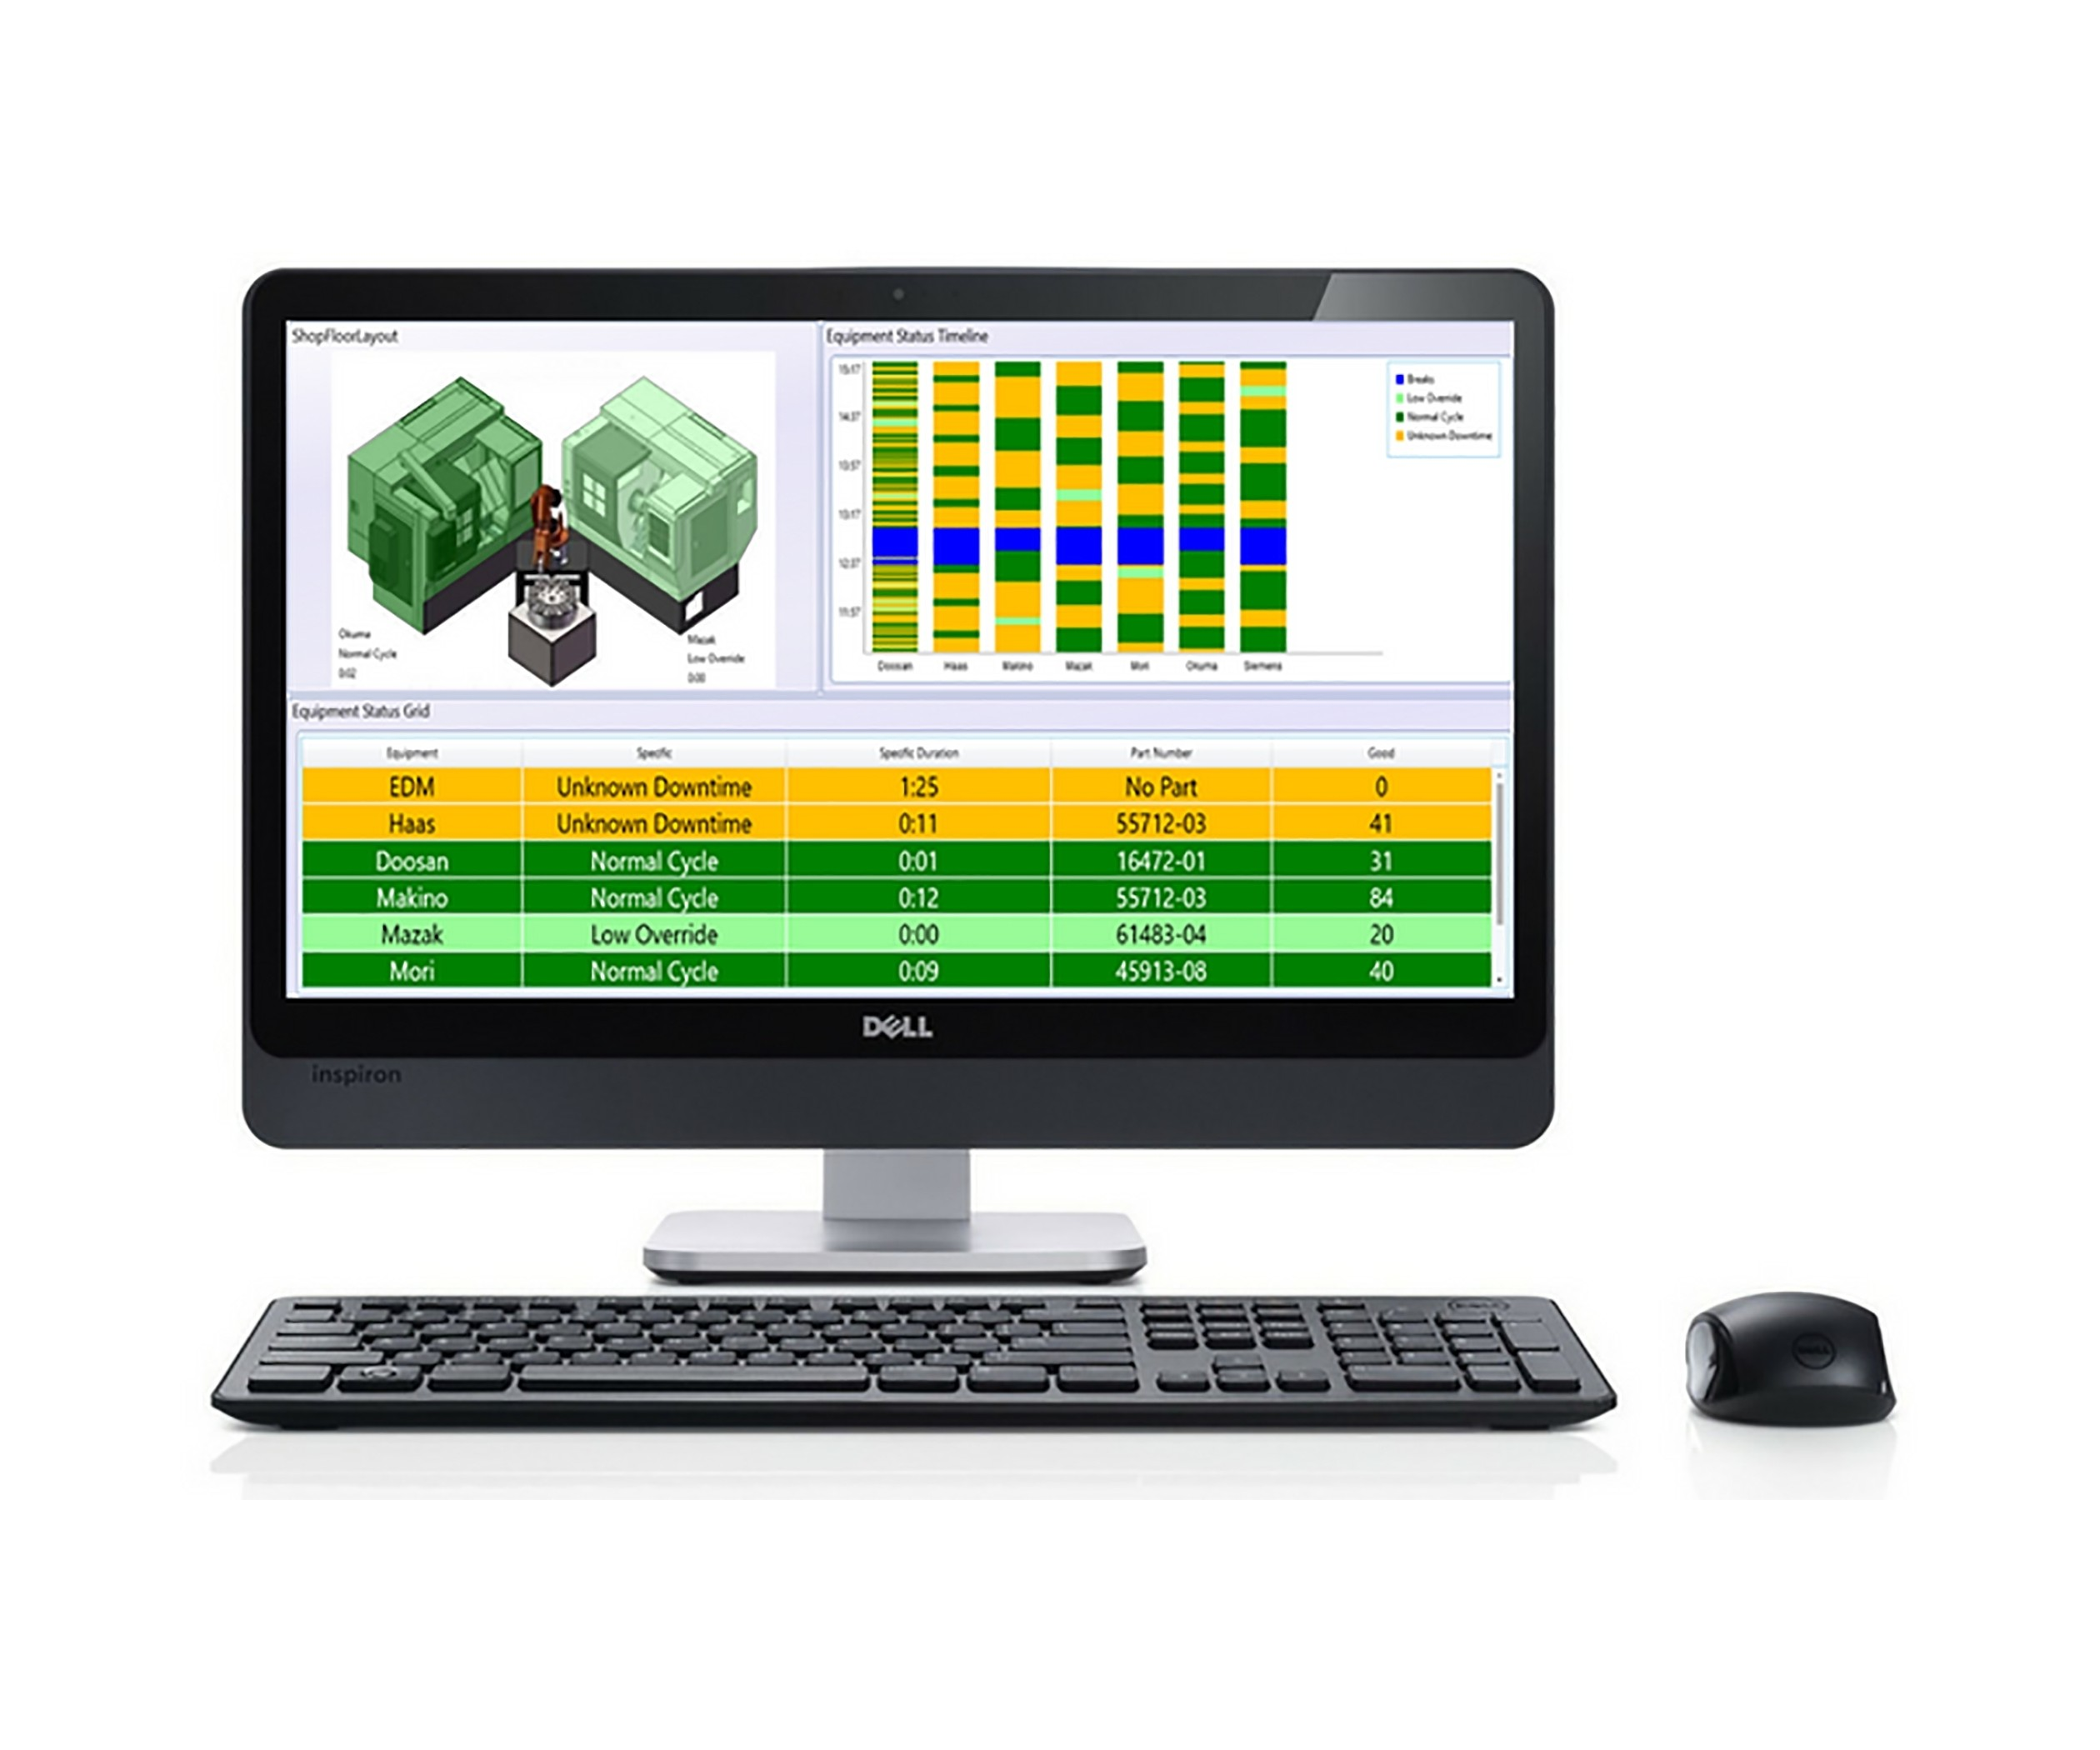 Machine Monitoring System Gives Real-Time KPI, OEE Data